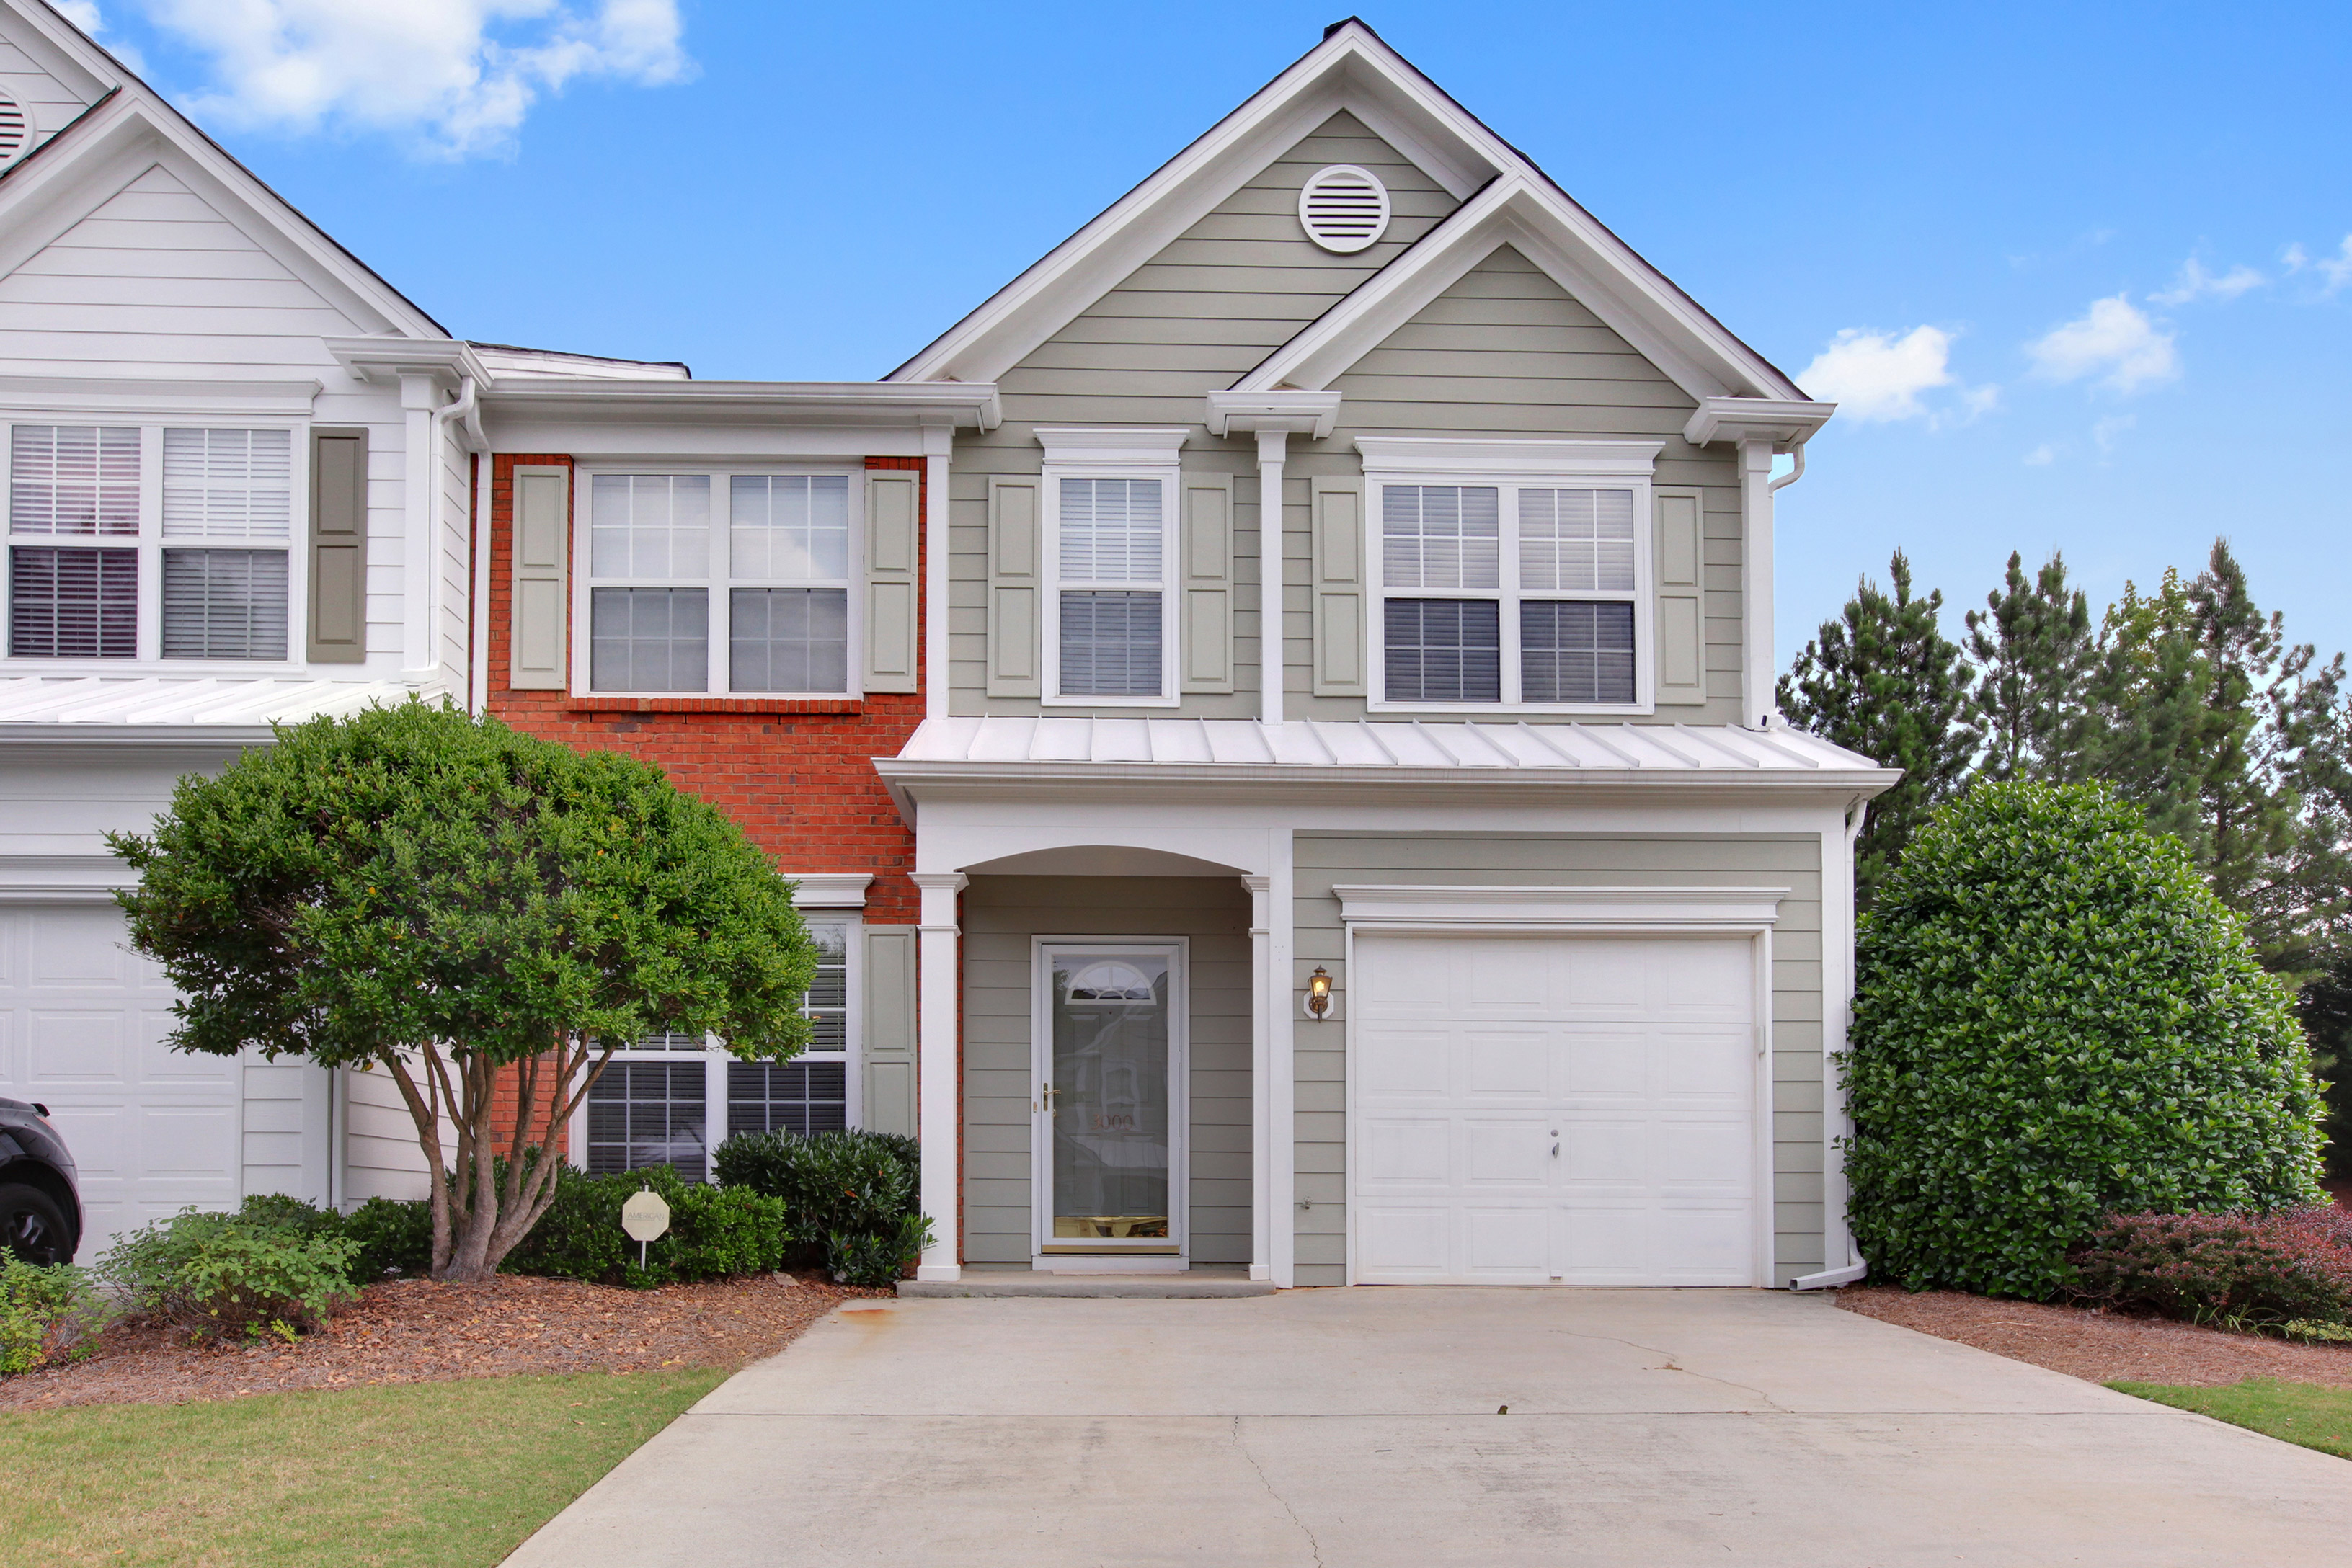 Таунхаус для того Продажа на Wonderful end unit townhome in a swim community and a fabulous location 3000 Commonwealth Circle Alpharetta, Джорджия 30004 Соединенные Штаты